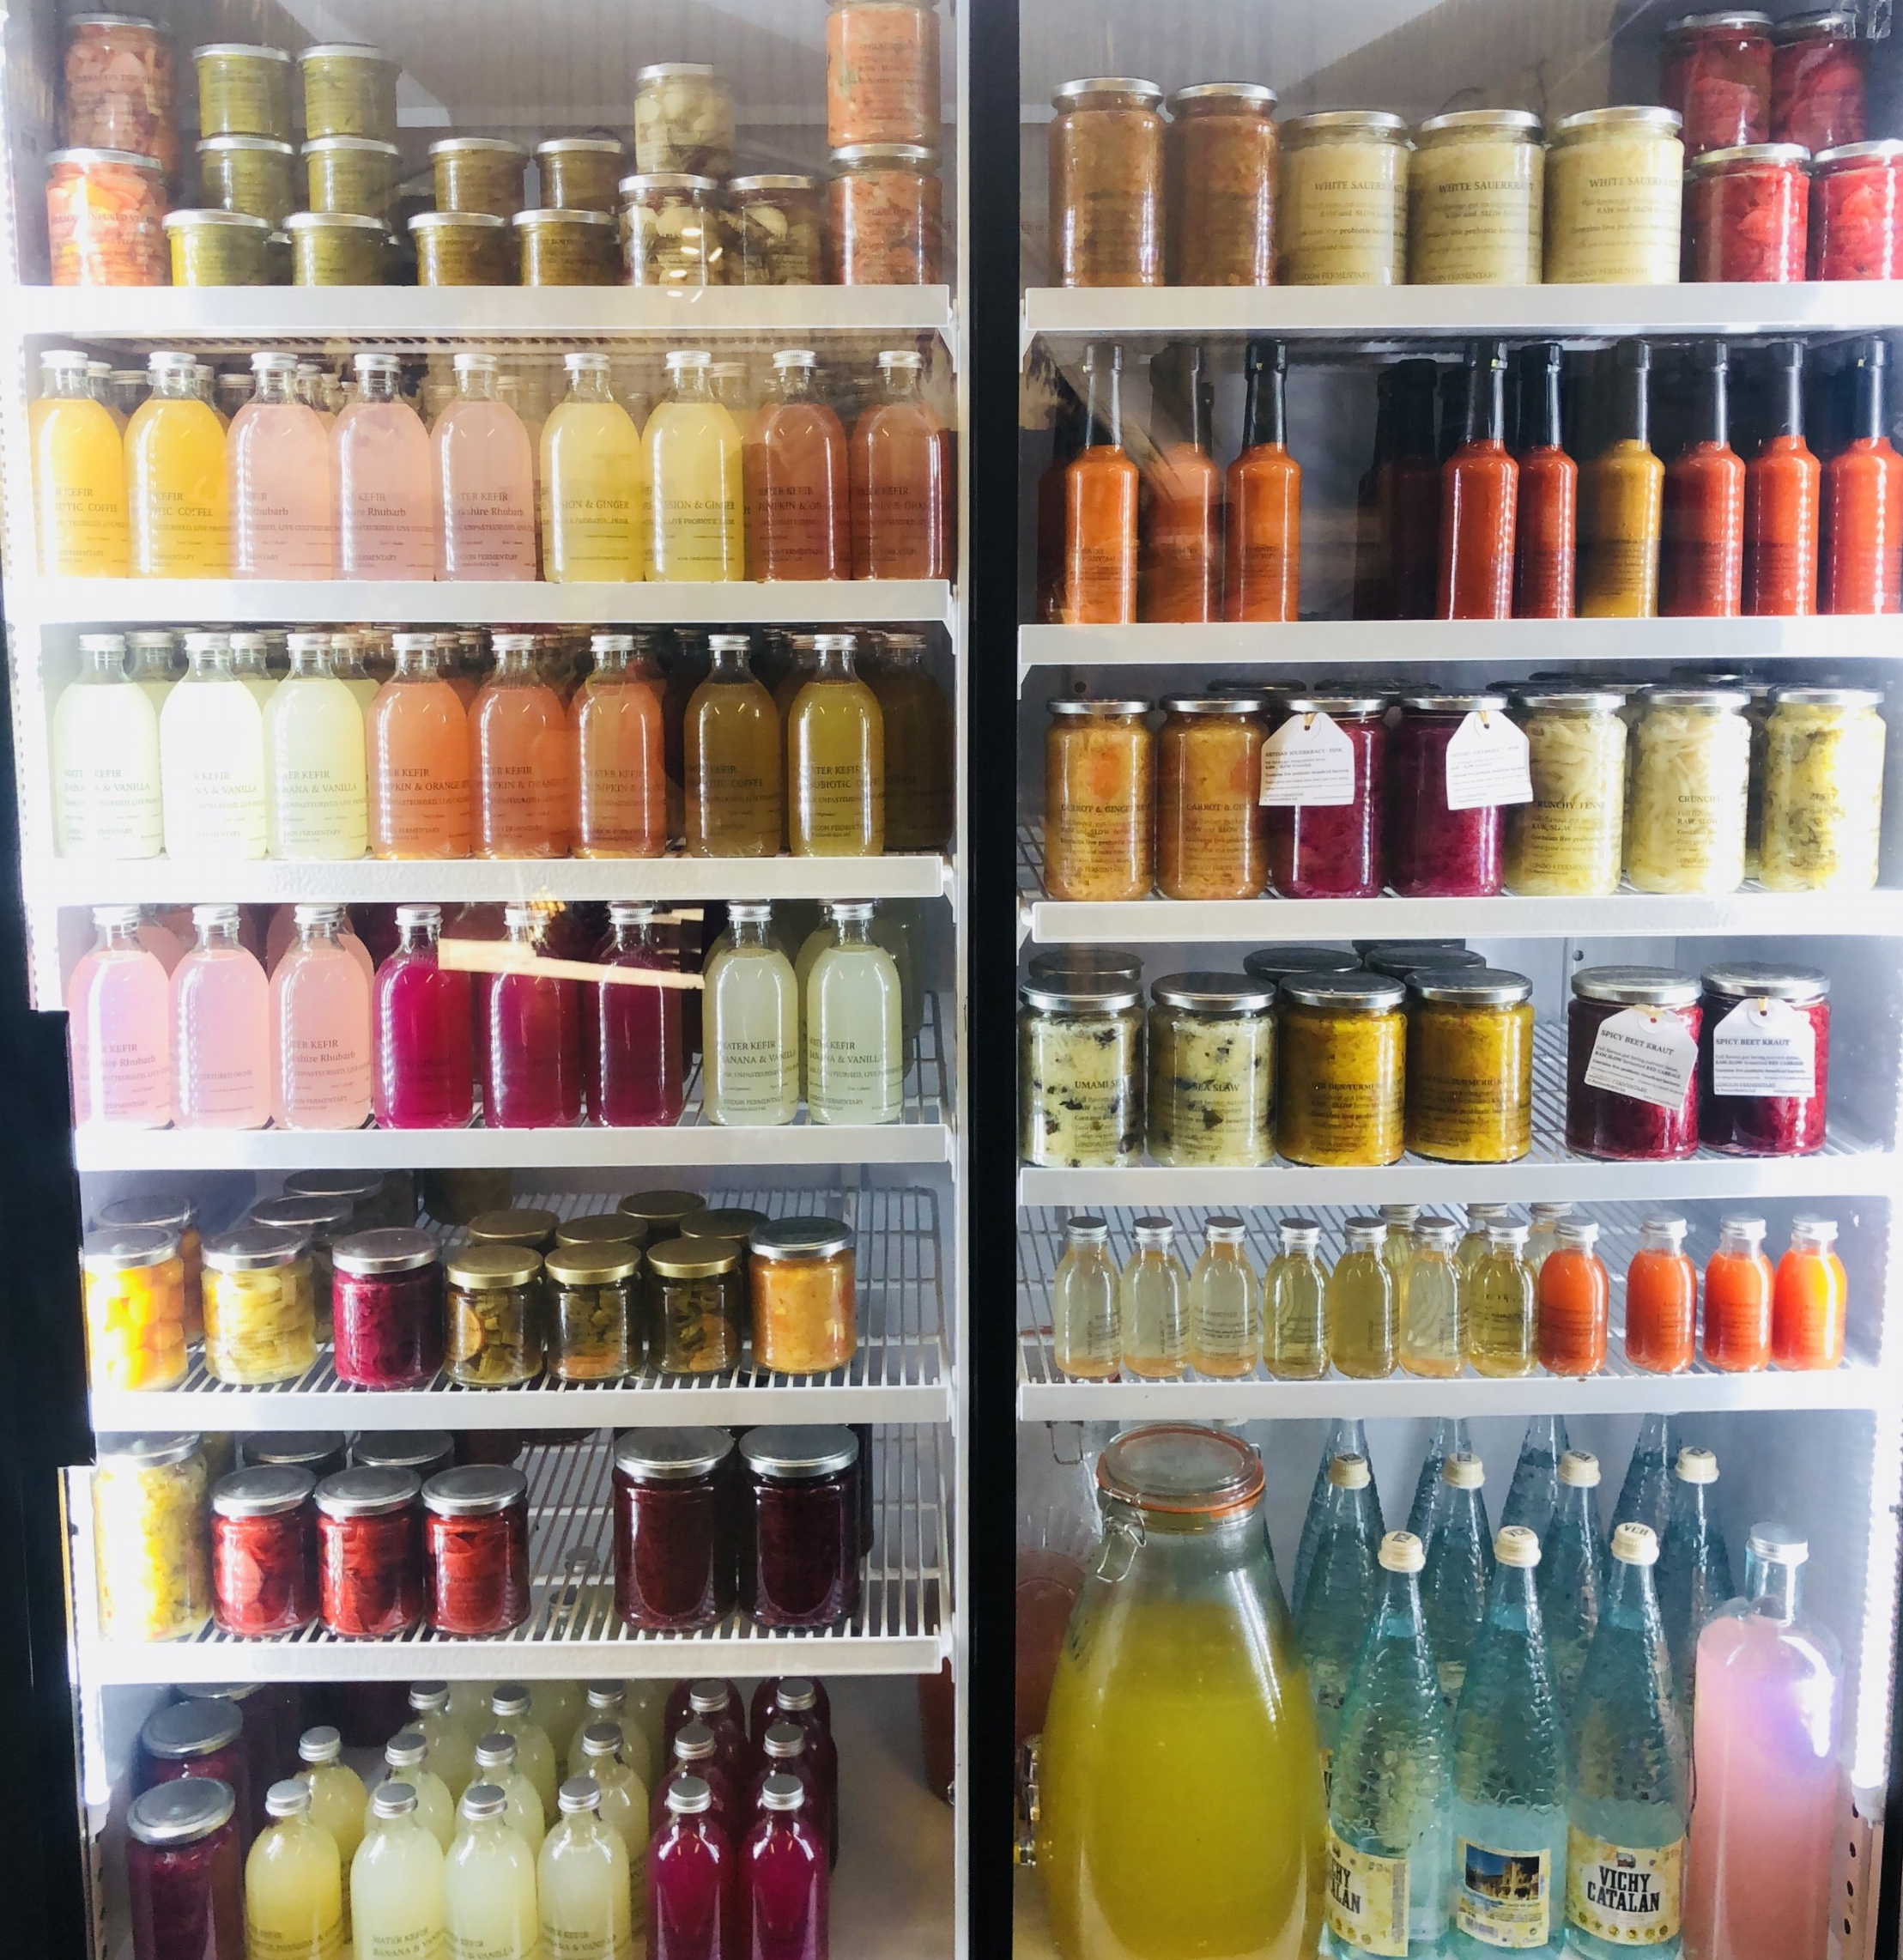 Our Lacto Fermented Fridge       Photo ©Puntarelle&Co     NEW Brand:   As you will have seen from our fridge, we have been developing fermented products based on a modern interpretation of our heritage of minimum waste and preserving the seasons. Scientific studies have shown that the nutritional value of vegetables can be enhanced by lactic acid fermentation. Their beneficial effects on digestive and other aspects of our health is a subject close to our hearts.   We will be launching our new brand  London Fermentary  in the near future and you will start to see it appearing on the labels on our fermented products. Please continue to enjoy our ferments and any feedback you can give us will be welcomed. This will help us focus on the ones we should keep.